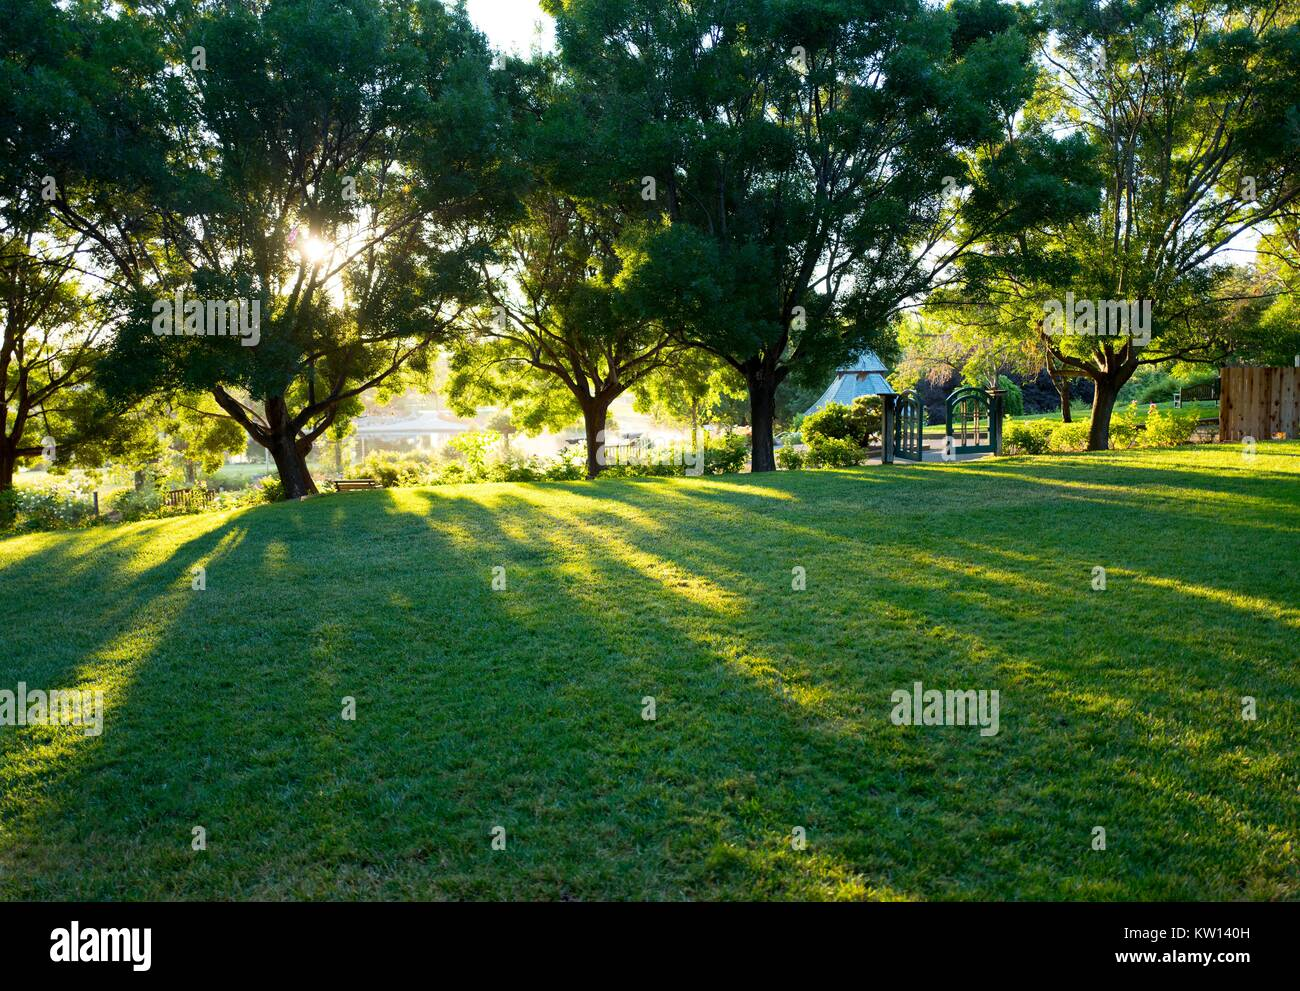 At Heather Farms Park, a public park in the San Francisco Bay Area, morning sunlight filters through trees and illuminates - Stock Image